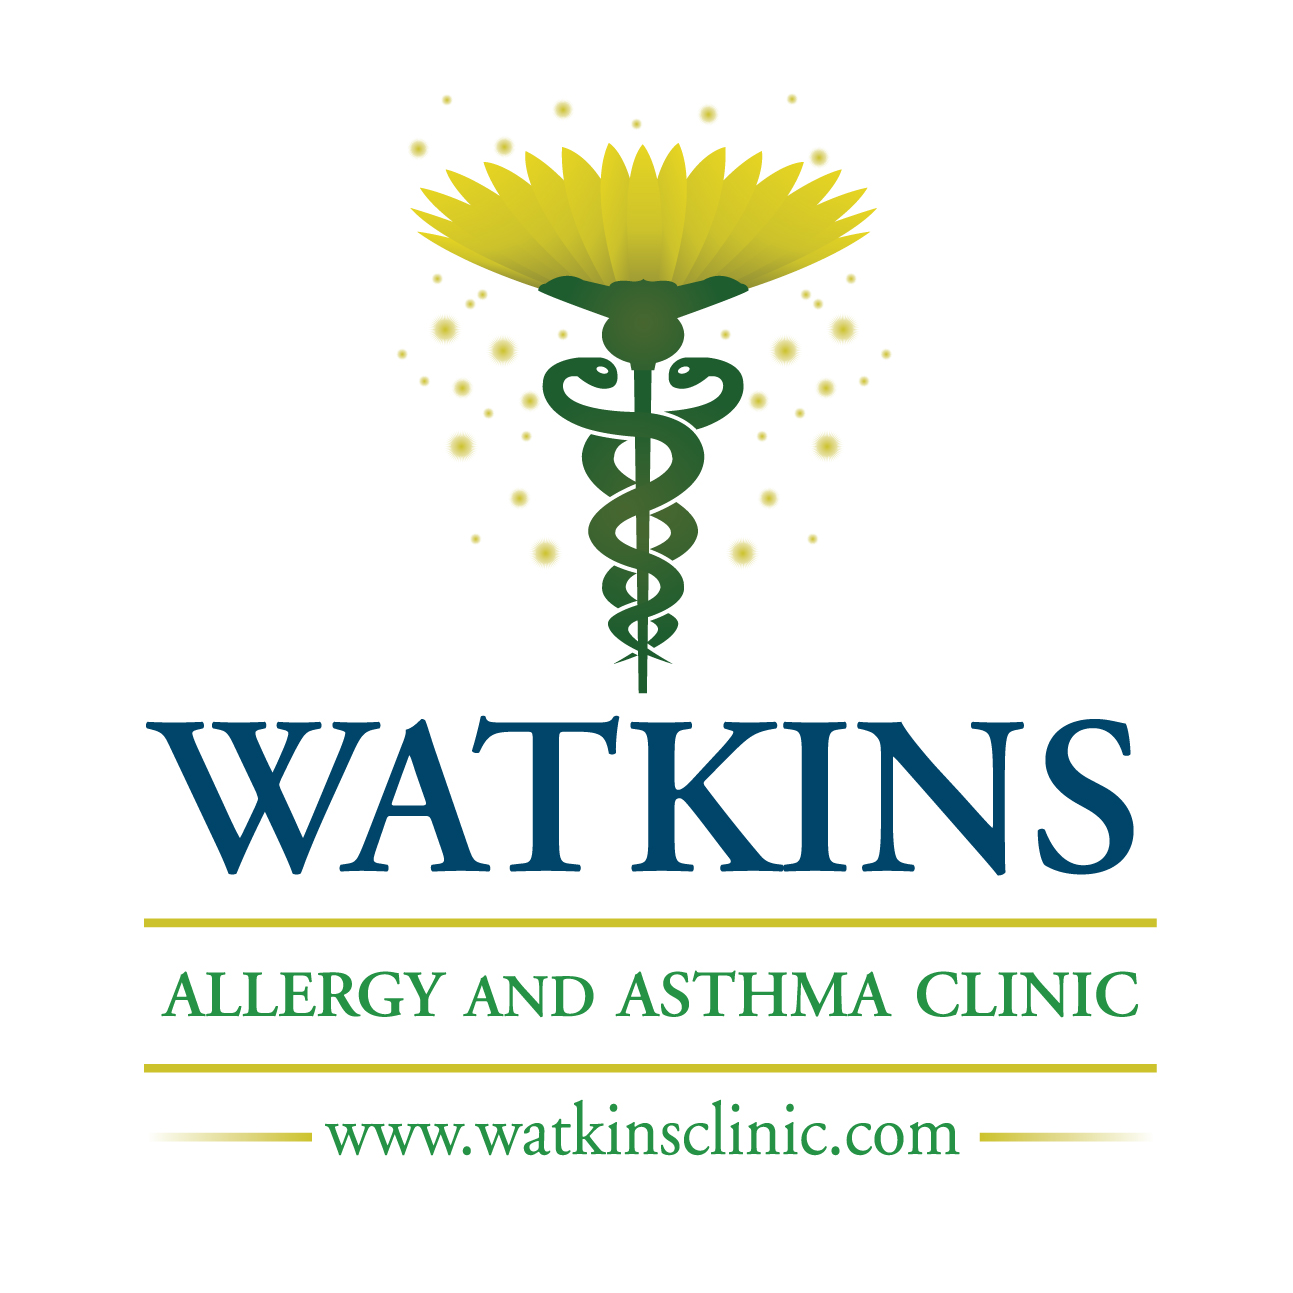 Watkins Allergy and Asthma Clinic